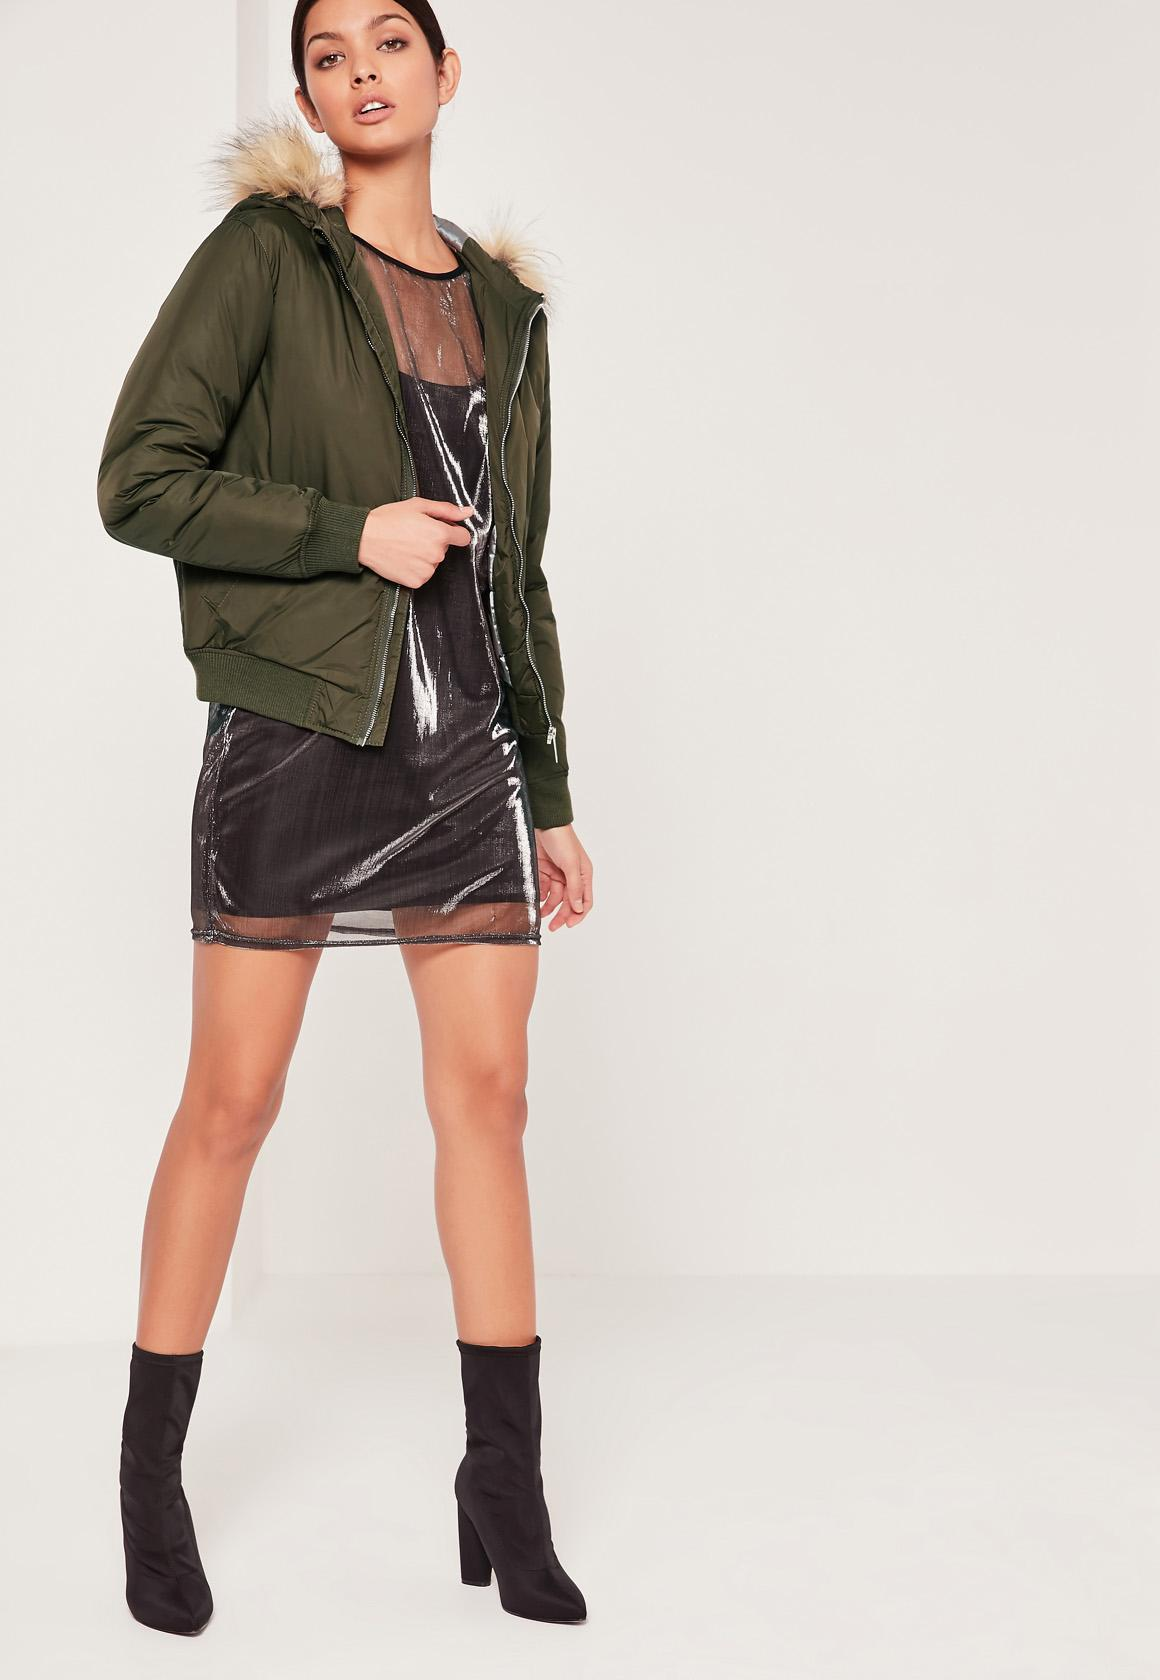 Cheap Clothing - Women's Fashion Sale | Missguided